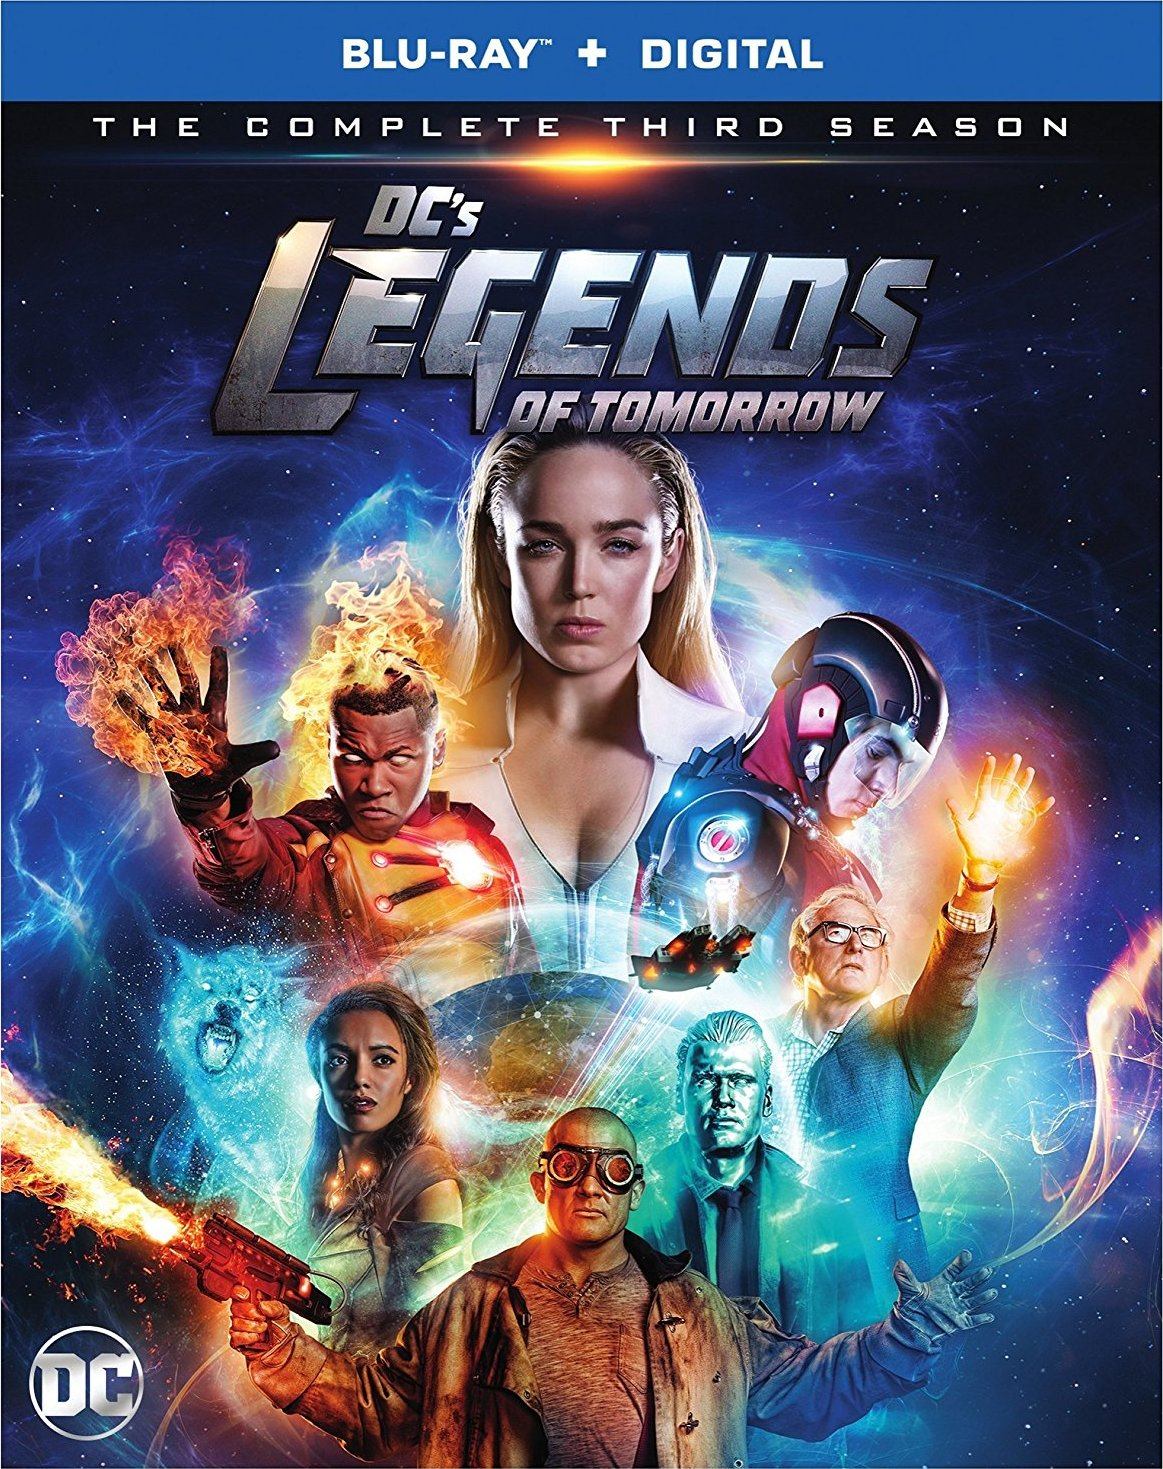 DC's Legends of Tomorrow: The Complete Third Season (TV) (2017) Blu-ray